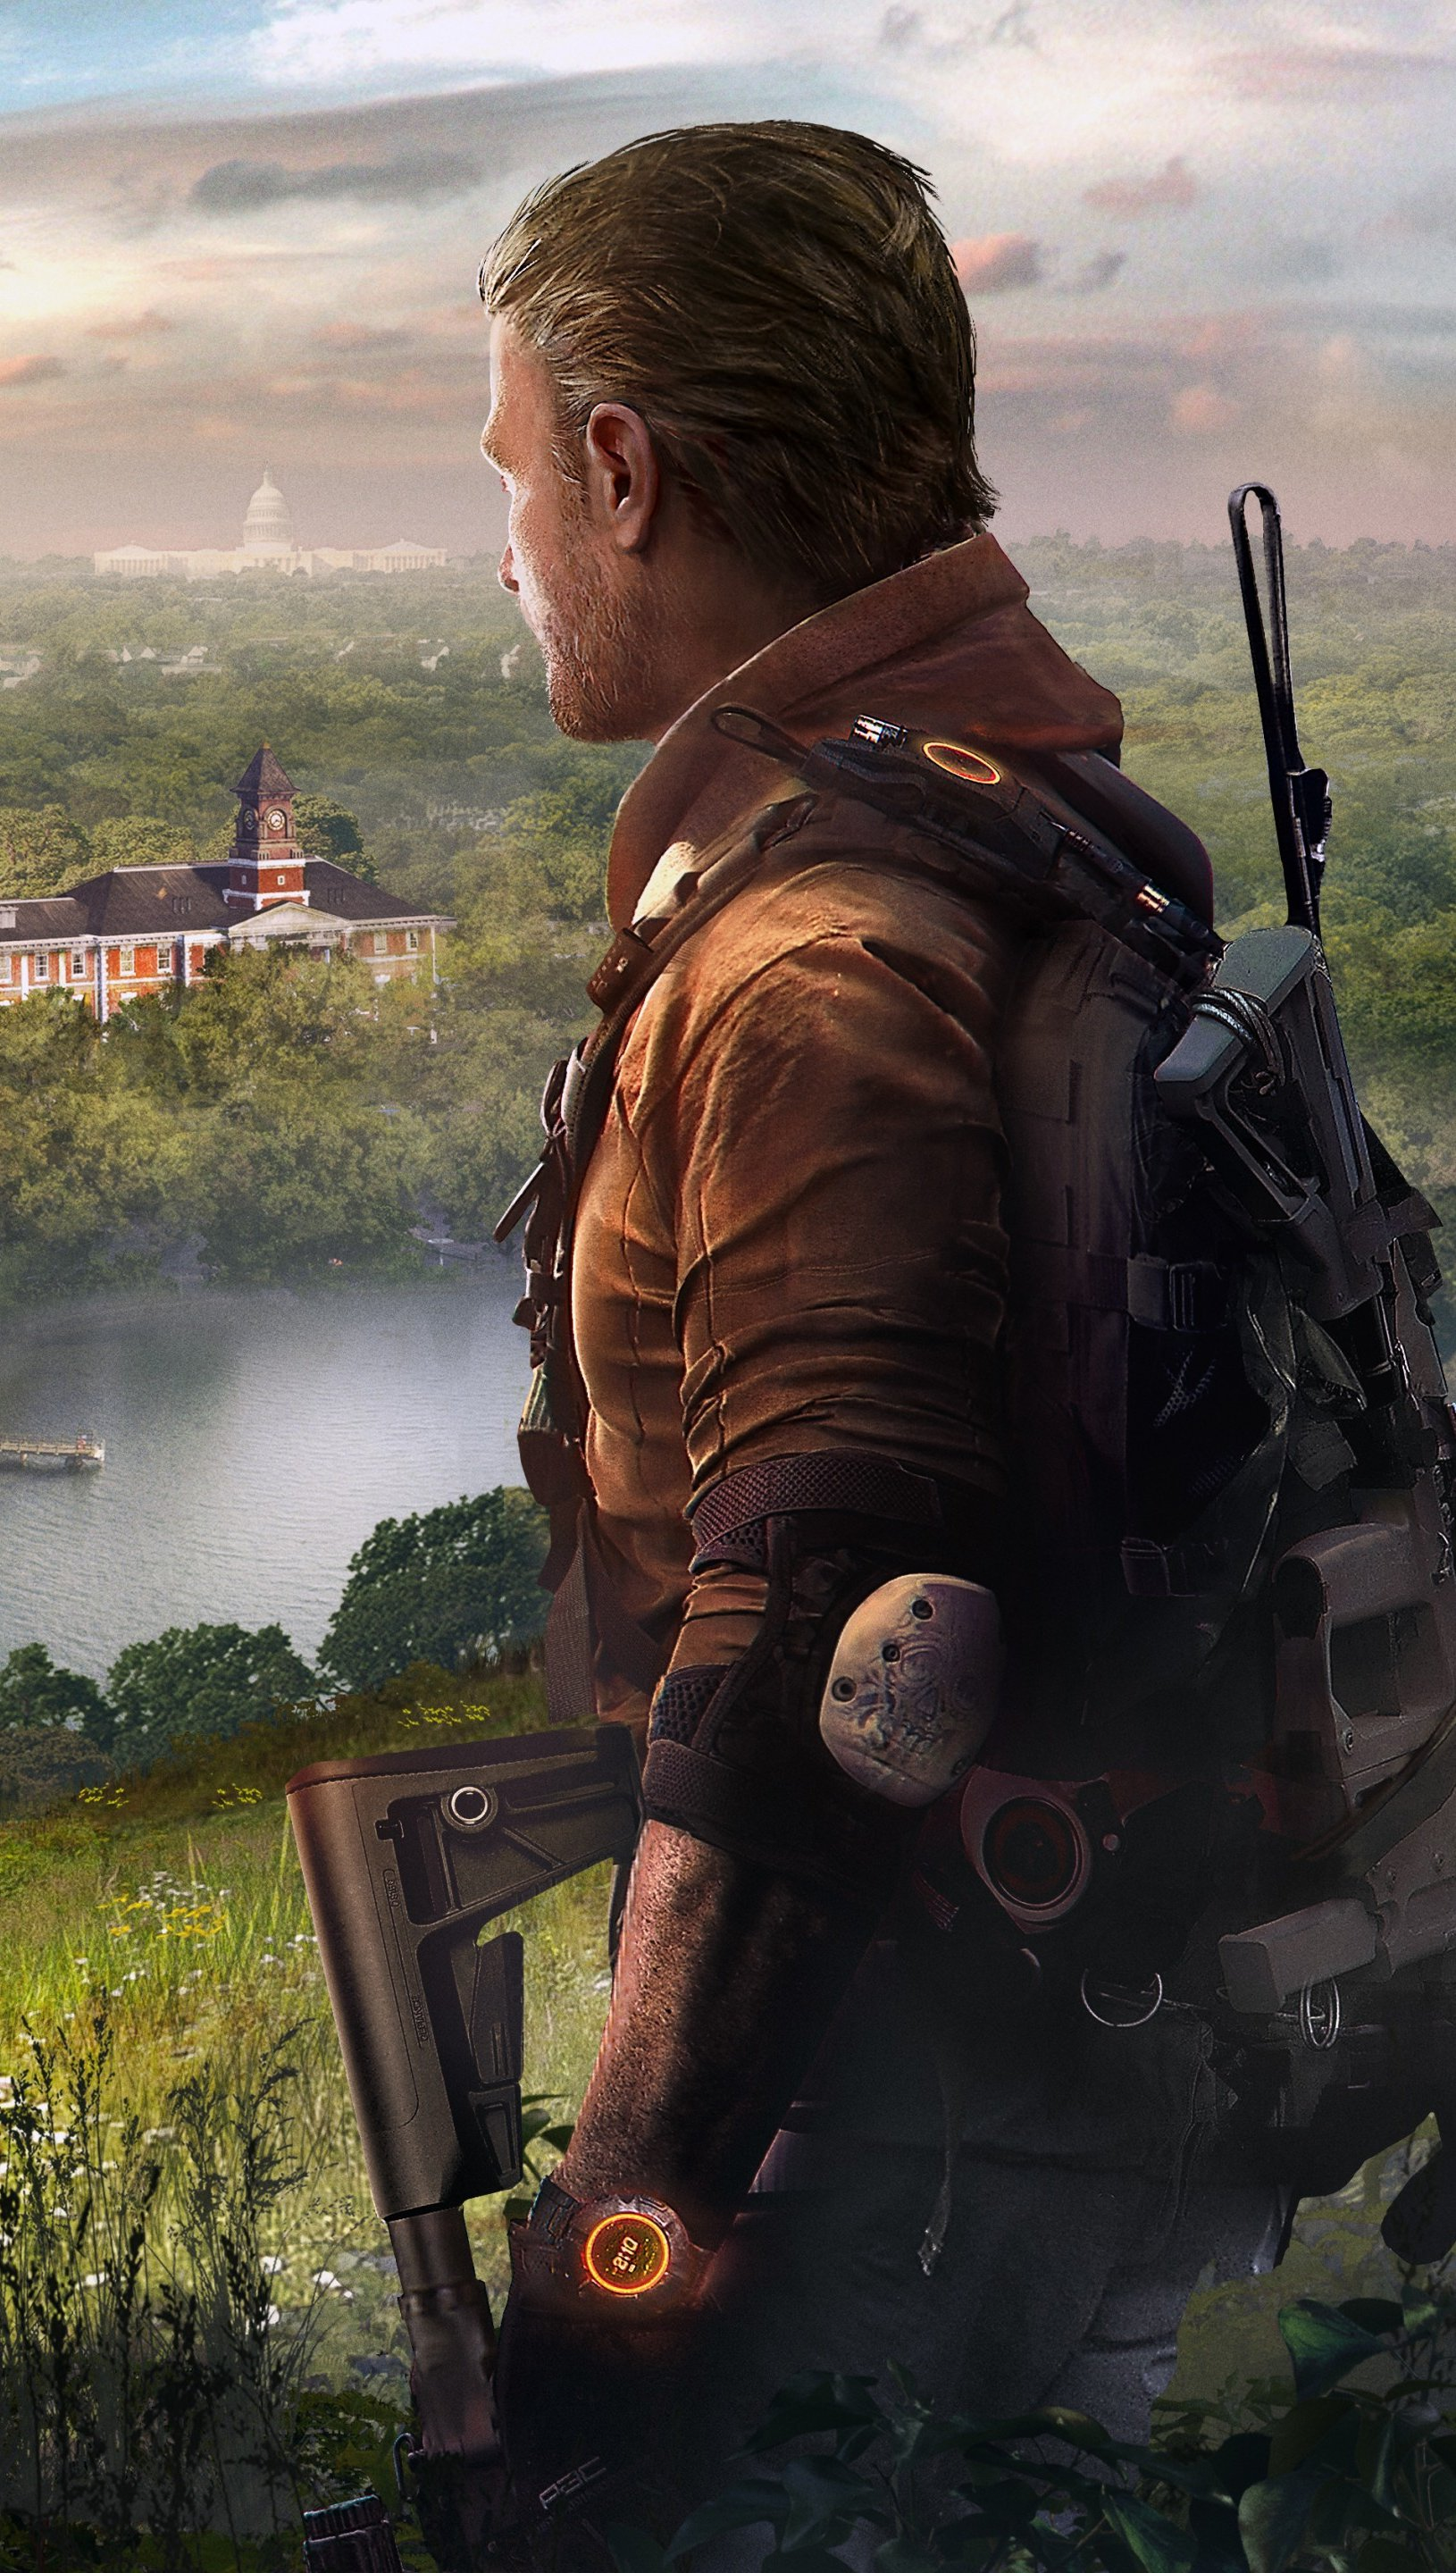 Wallpaper Tom Clancy's The division 2 Episodes Vertical